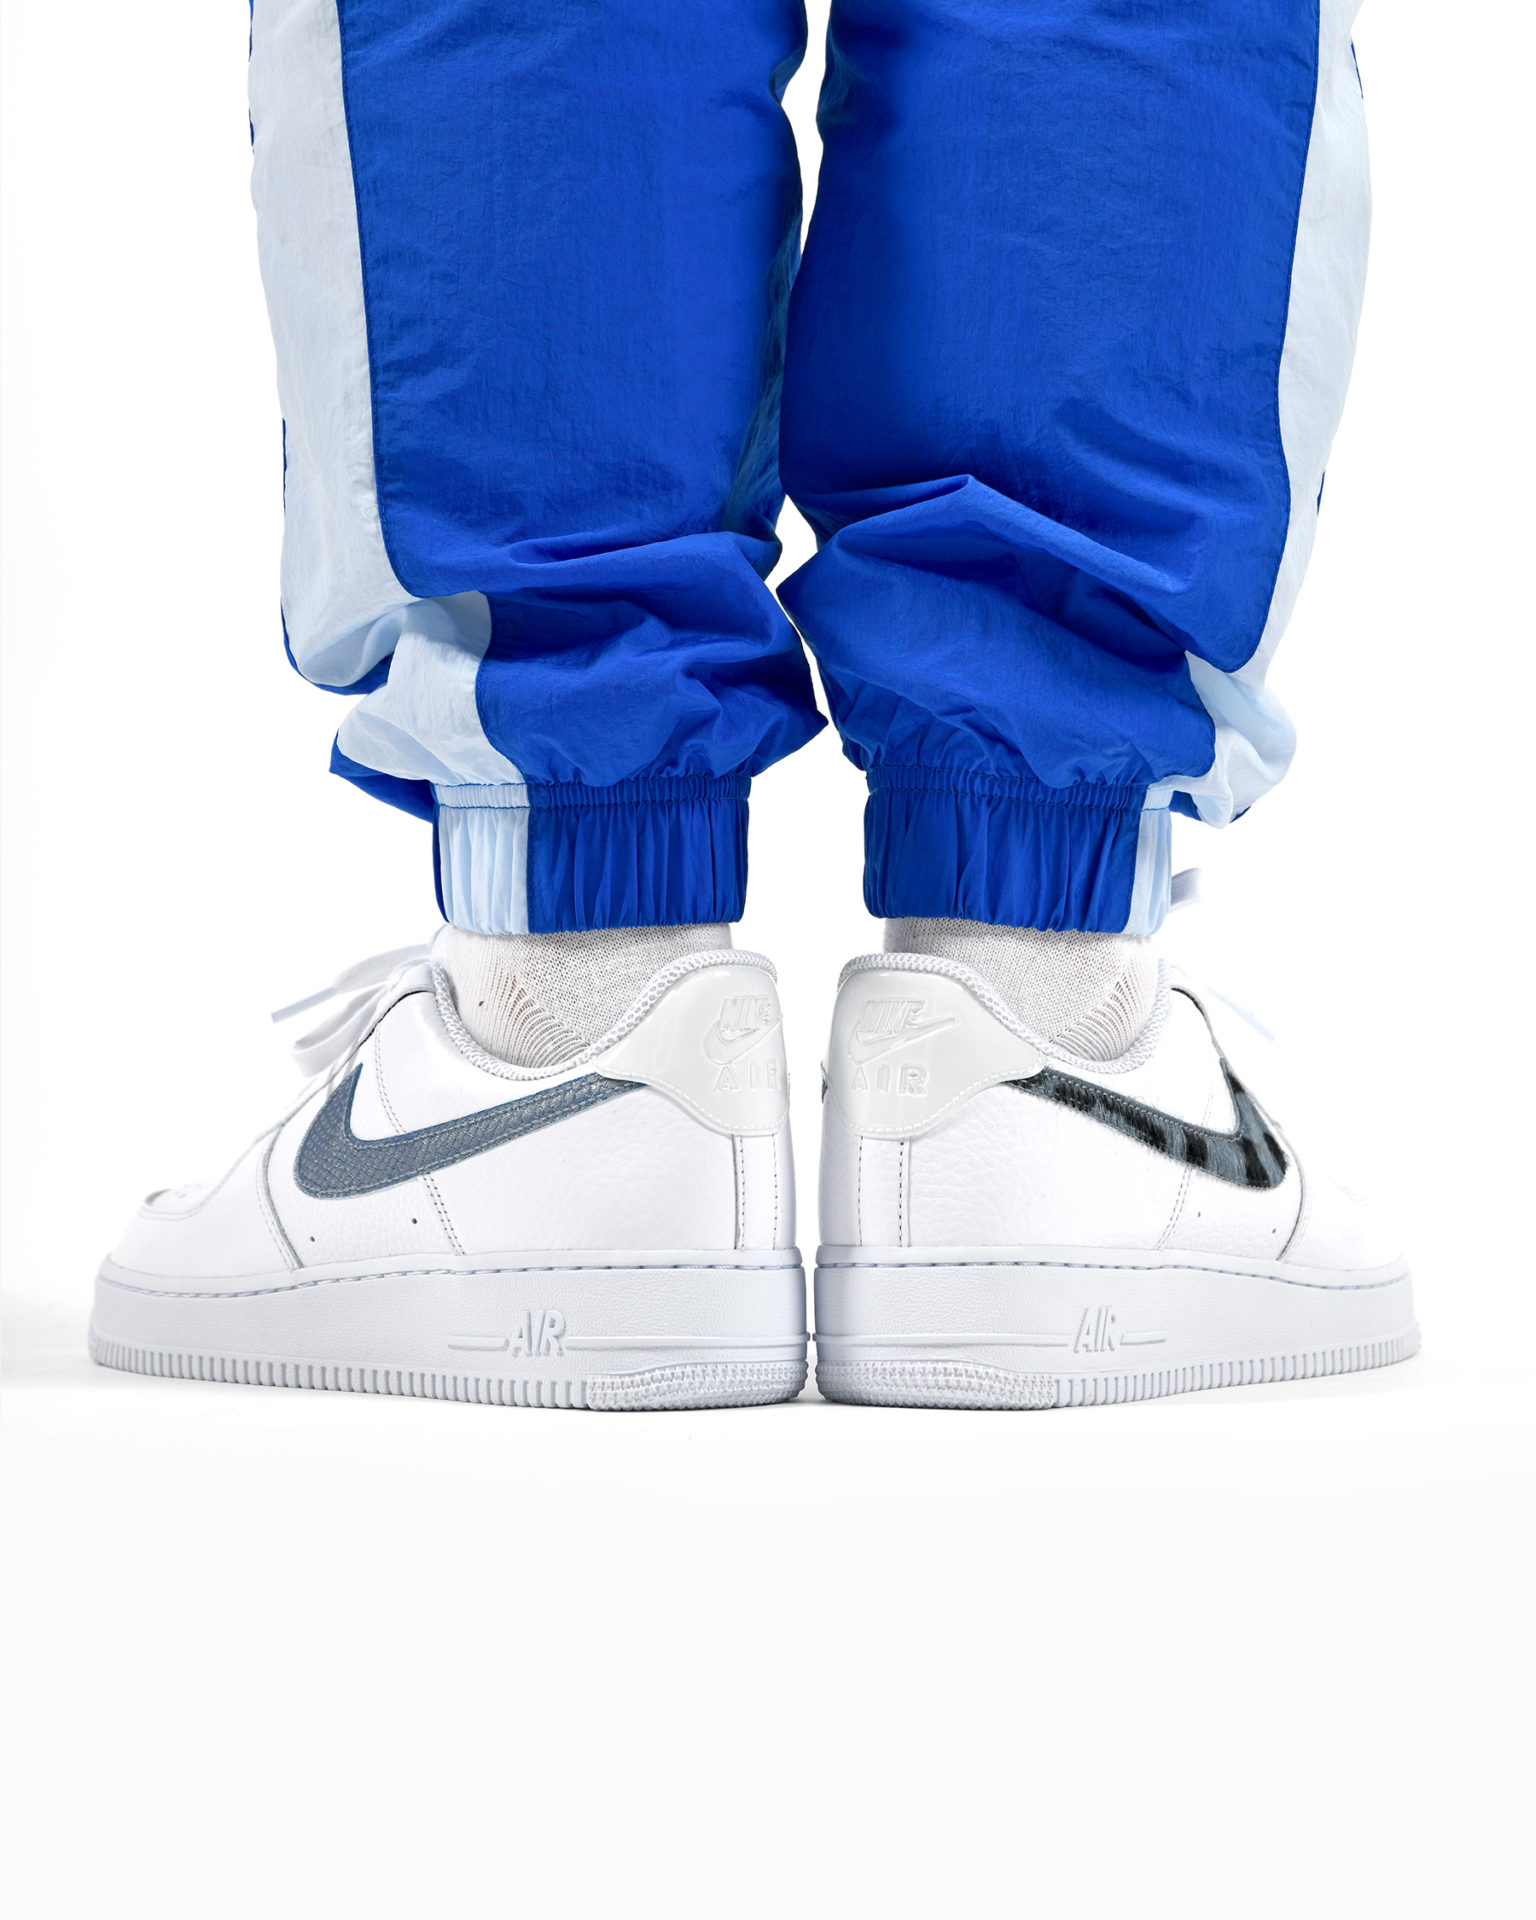 Nike Air Force 1 LV8 WhiteThunderstorm